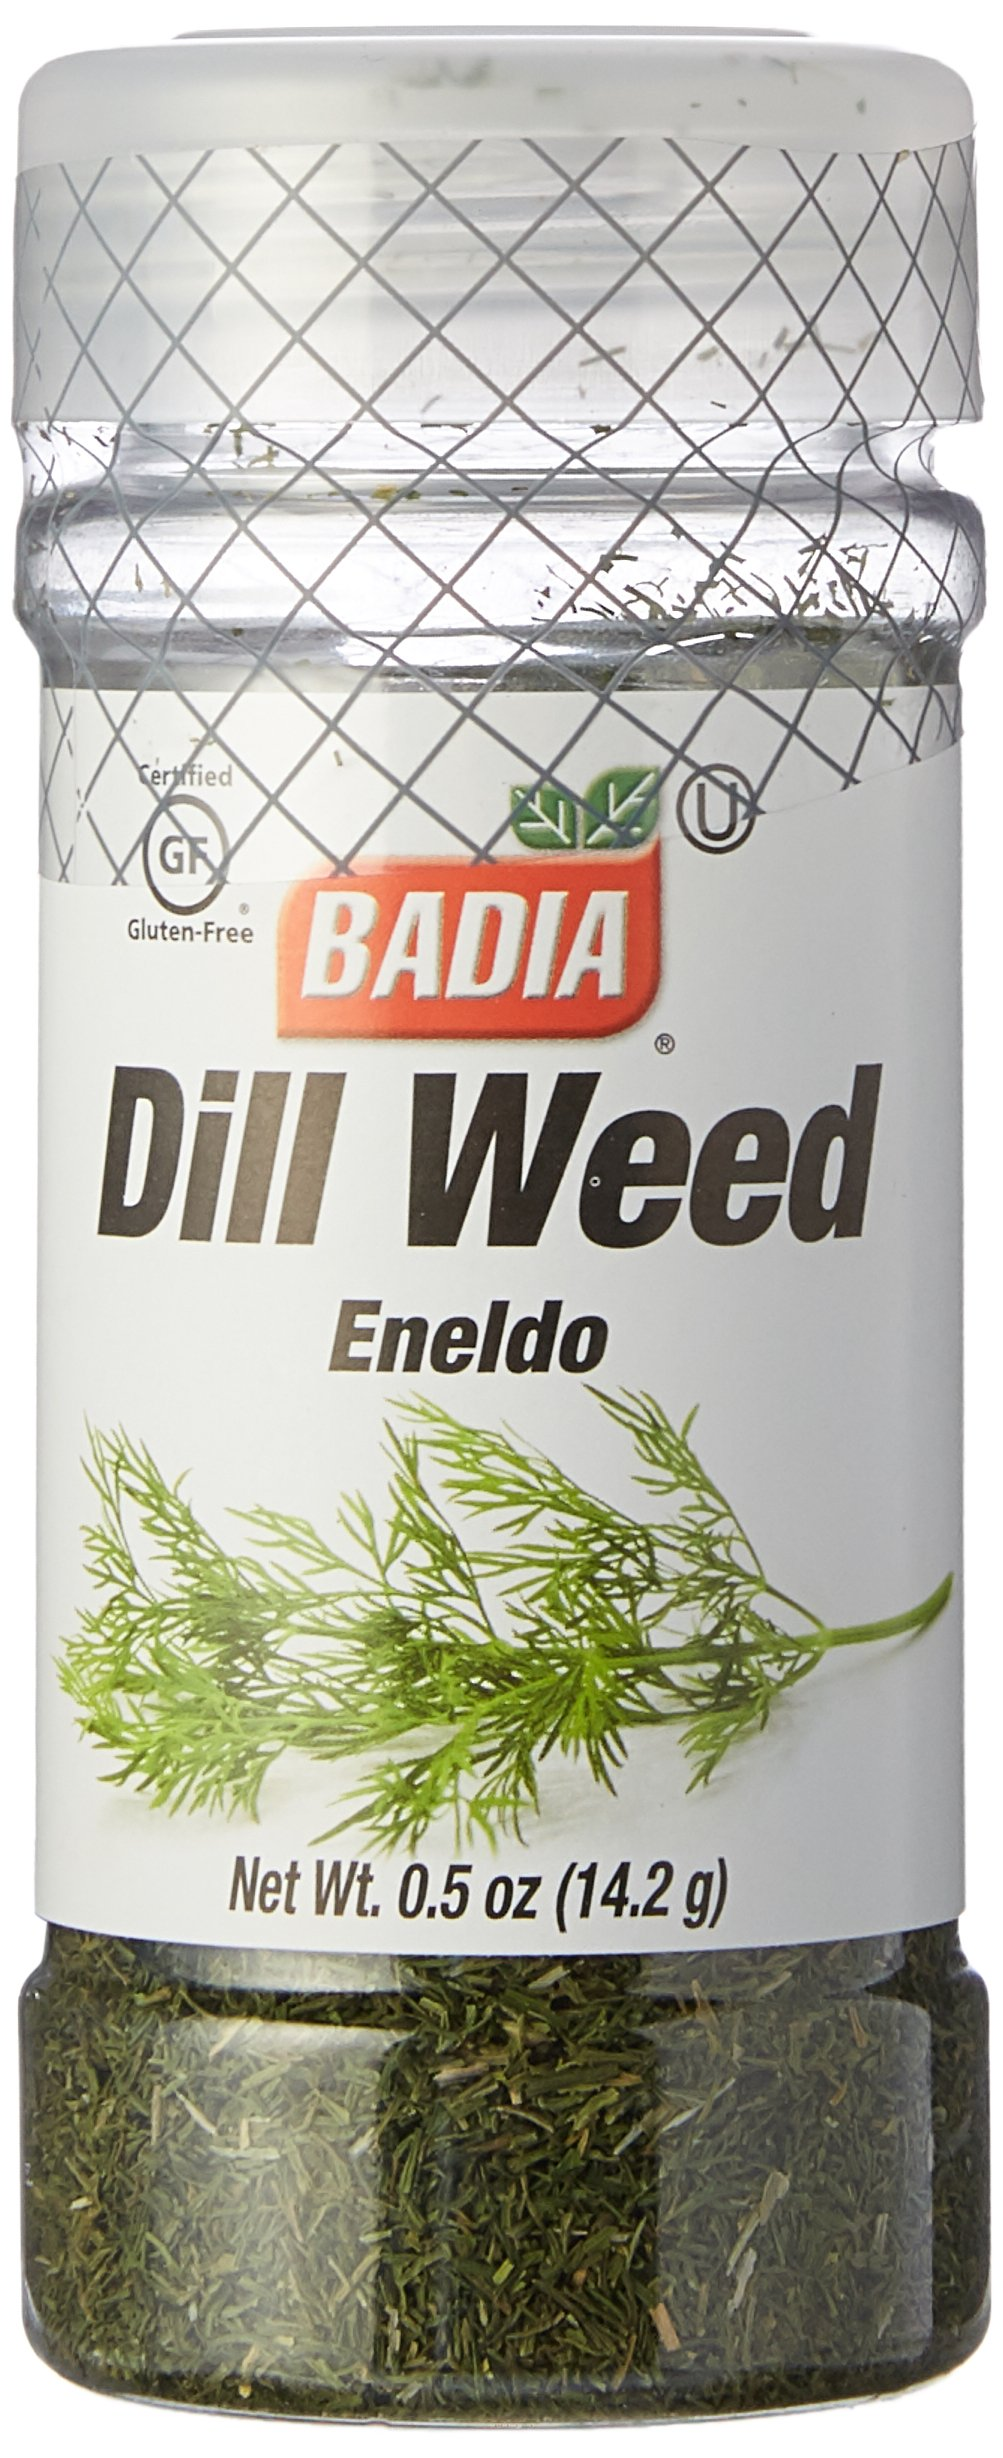 Badia Dill Weed 0.5 oz Pack of 3